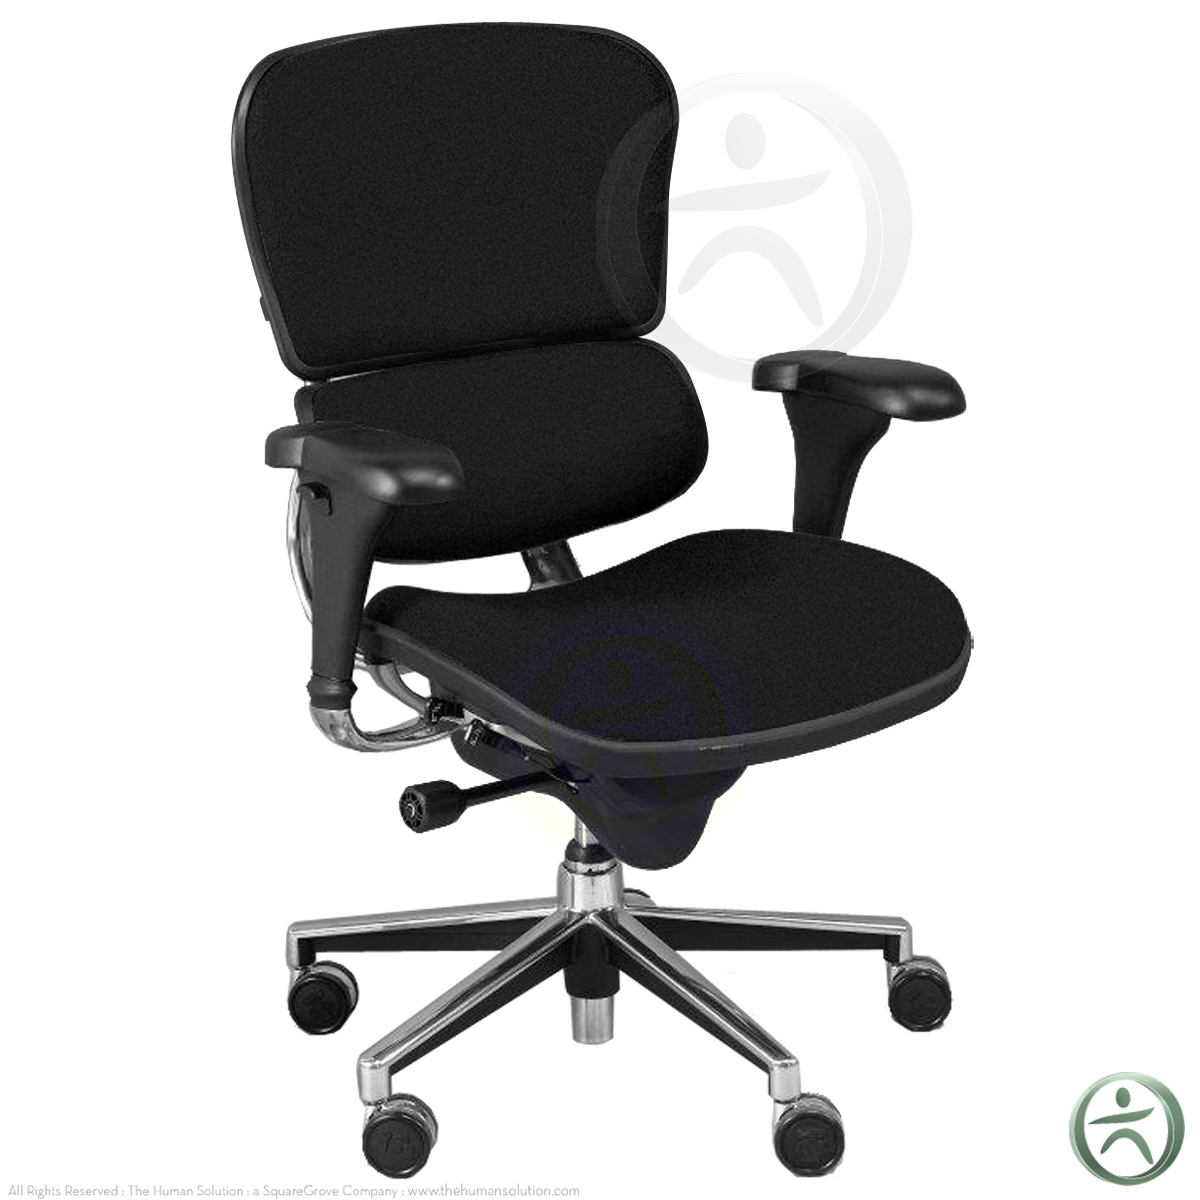 Raynor Chairs Shop Raynor Ergohuman Chairs Black Fabric Blk10erglo